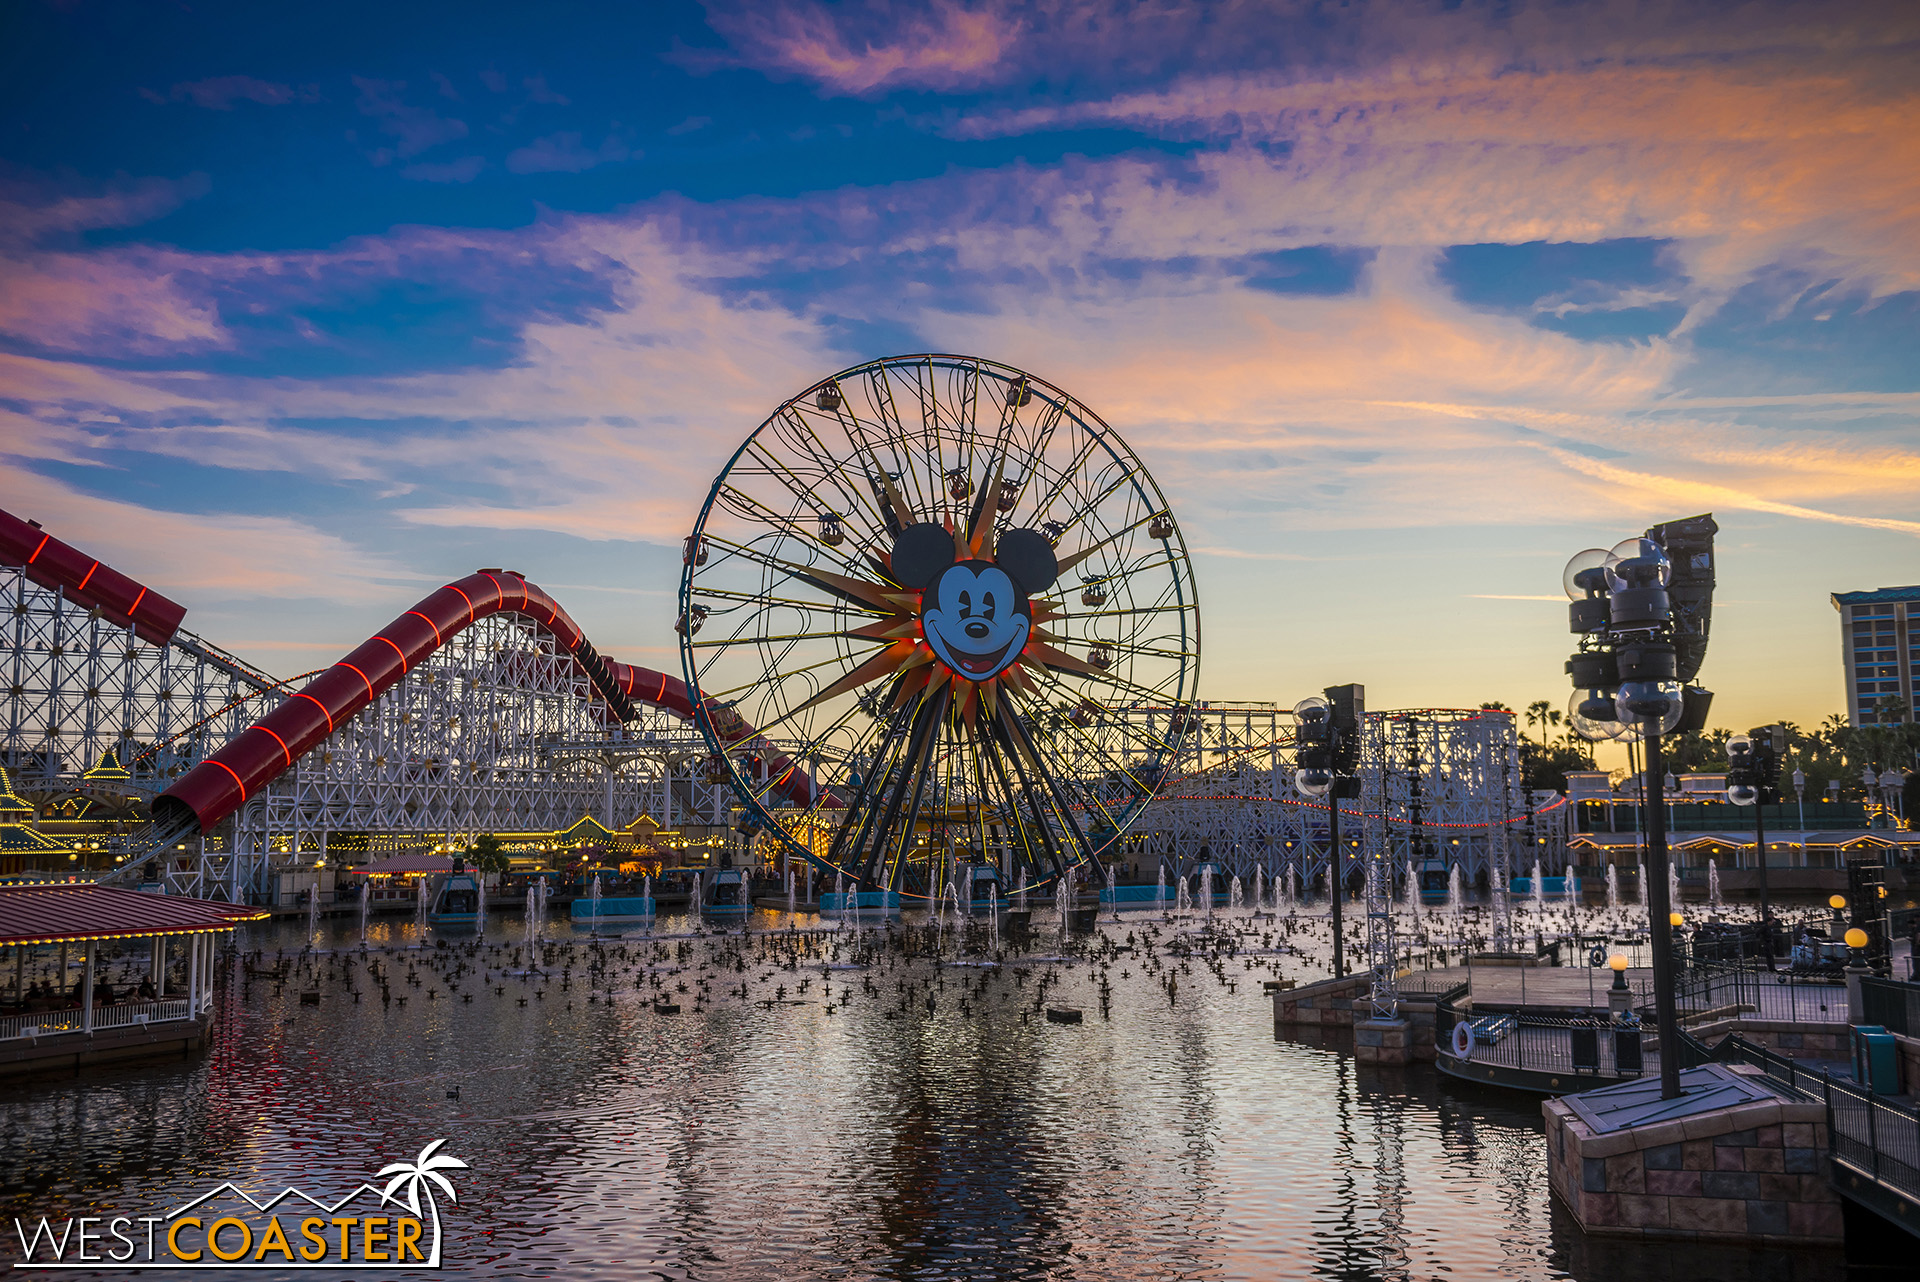 Nice sunset and the world as a Carousel of Color.